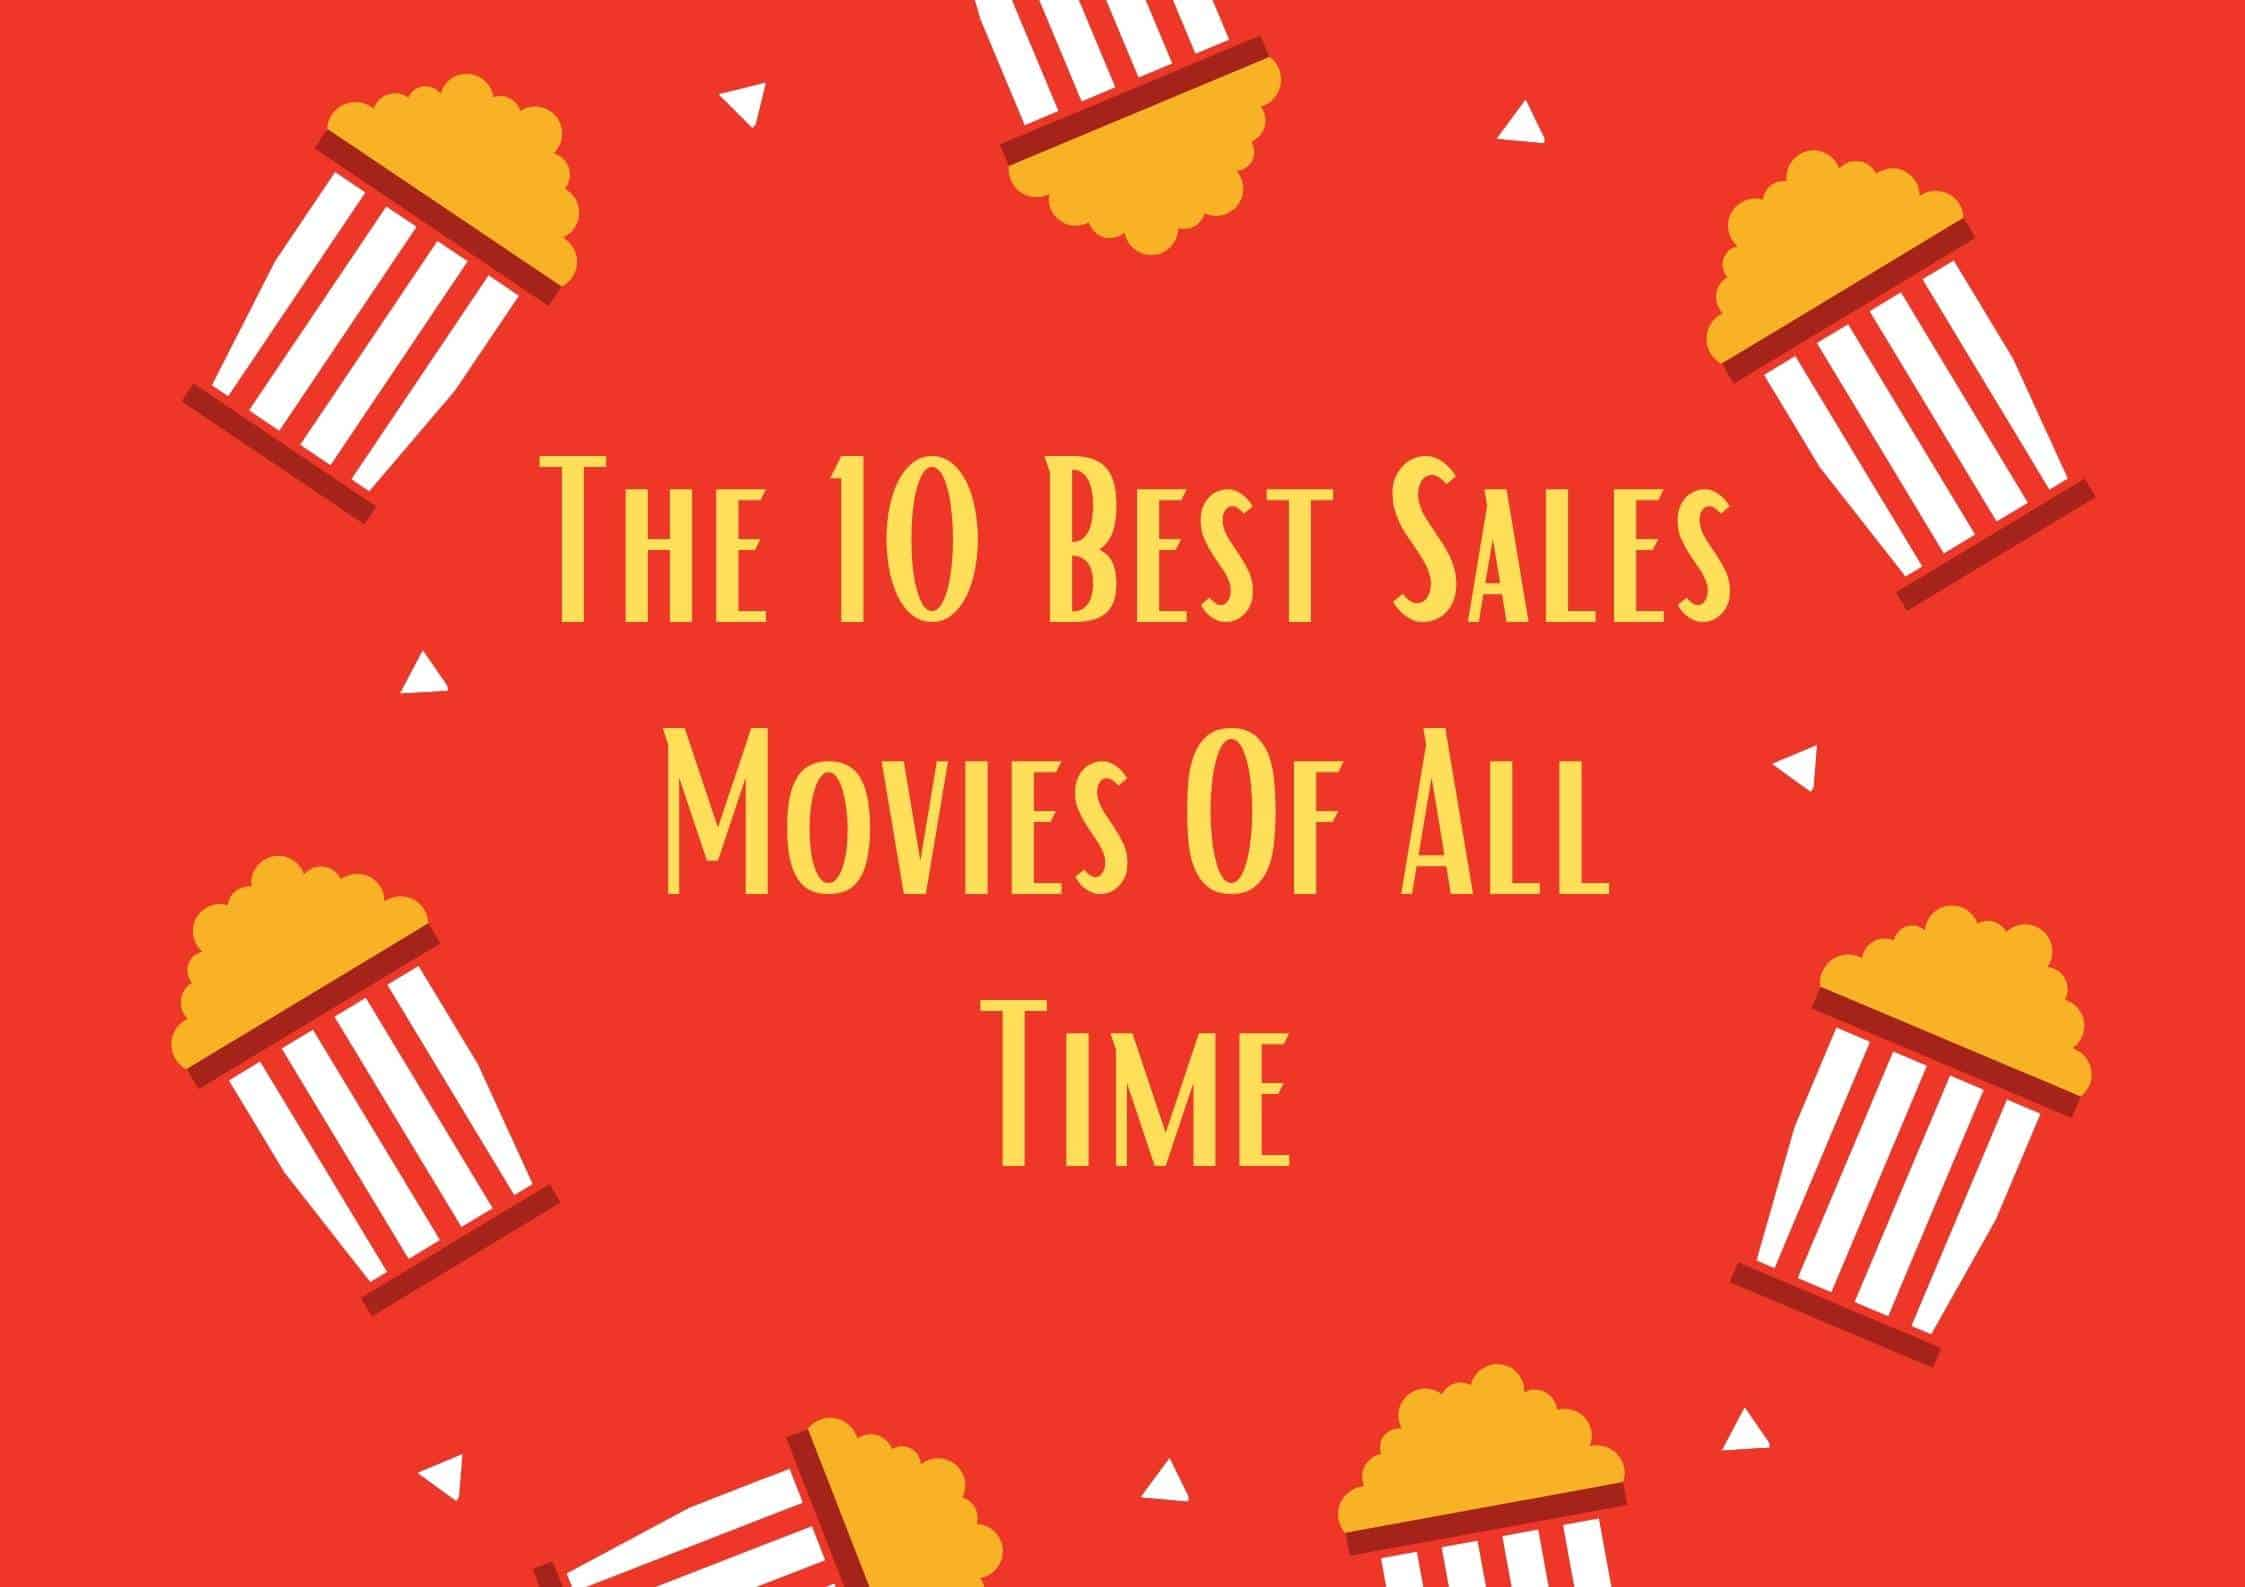 10 best sales movies aof all time